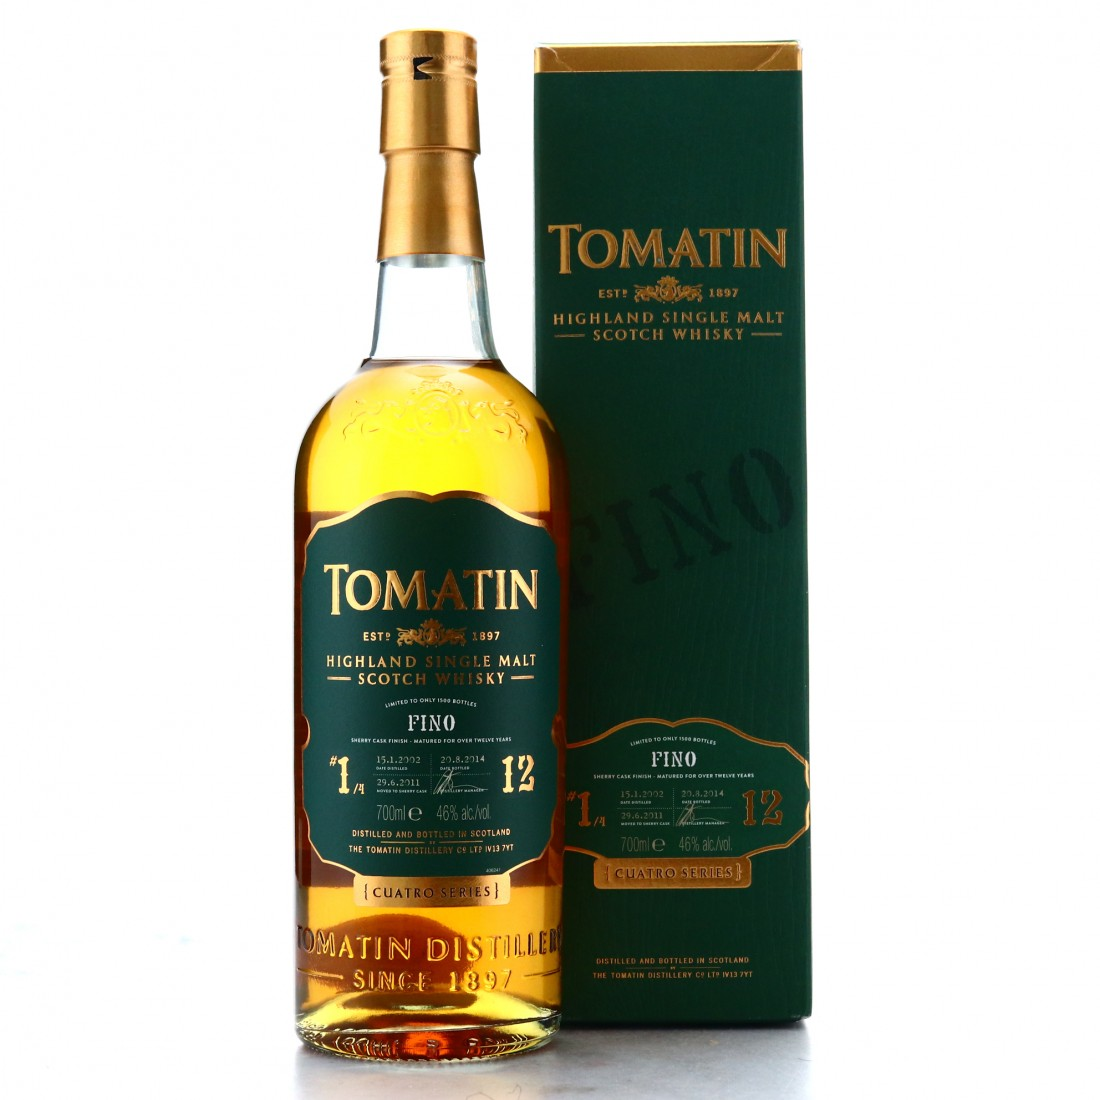 Tomatin 2002 Fino Finish 12 Year Old Cuatro #1